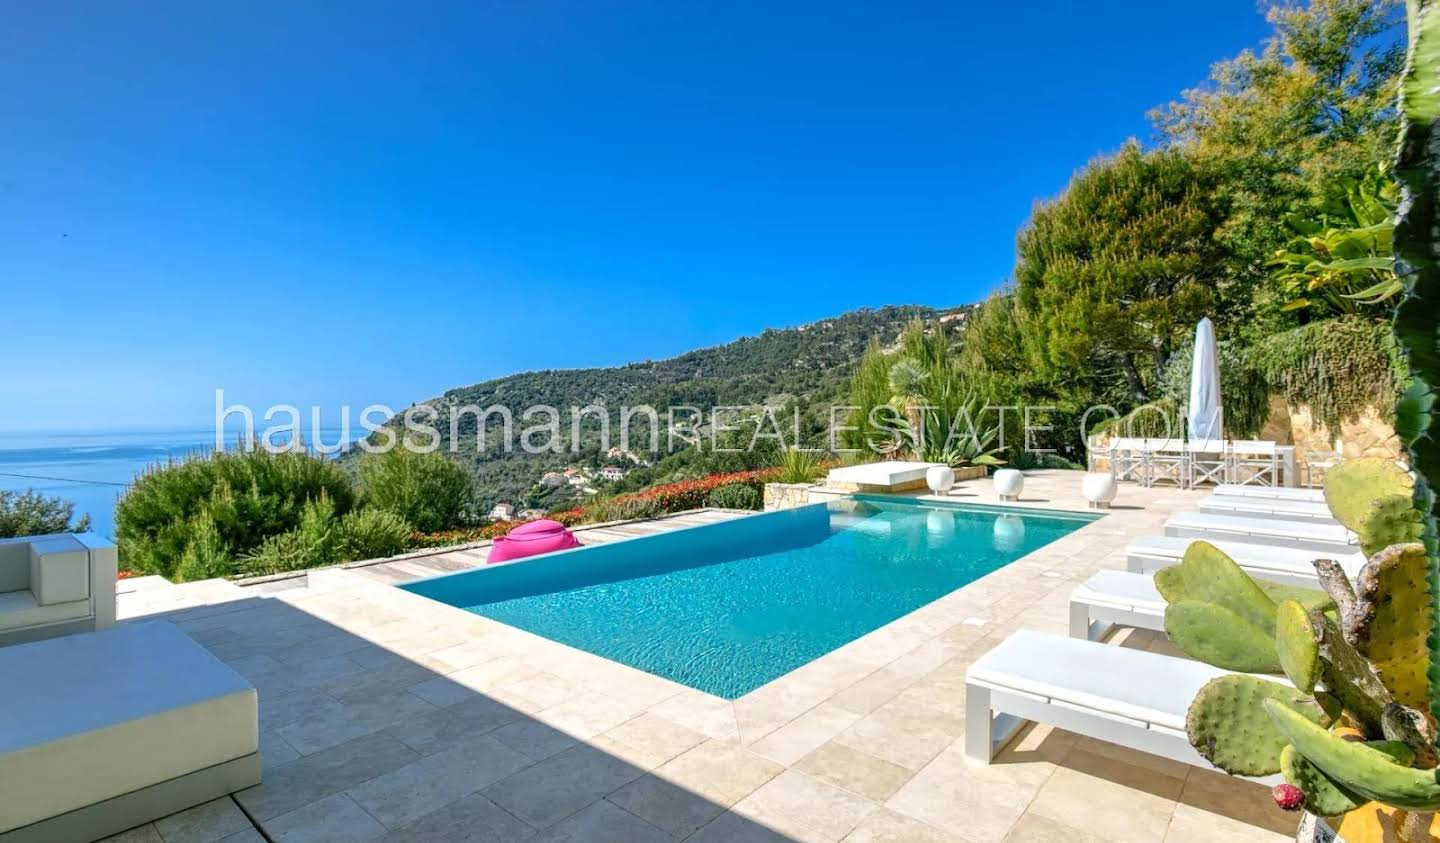 House with pool and terrace Eze